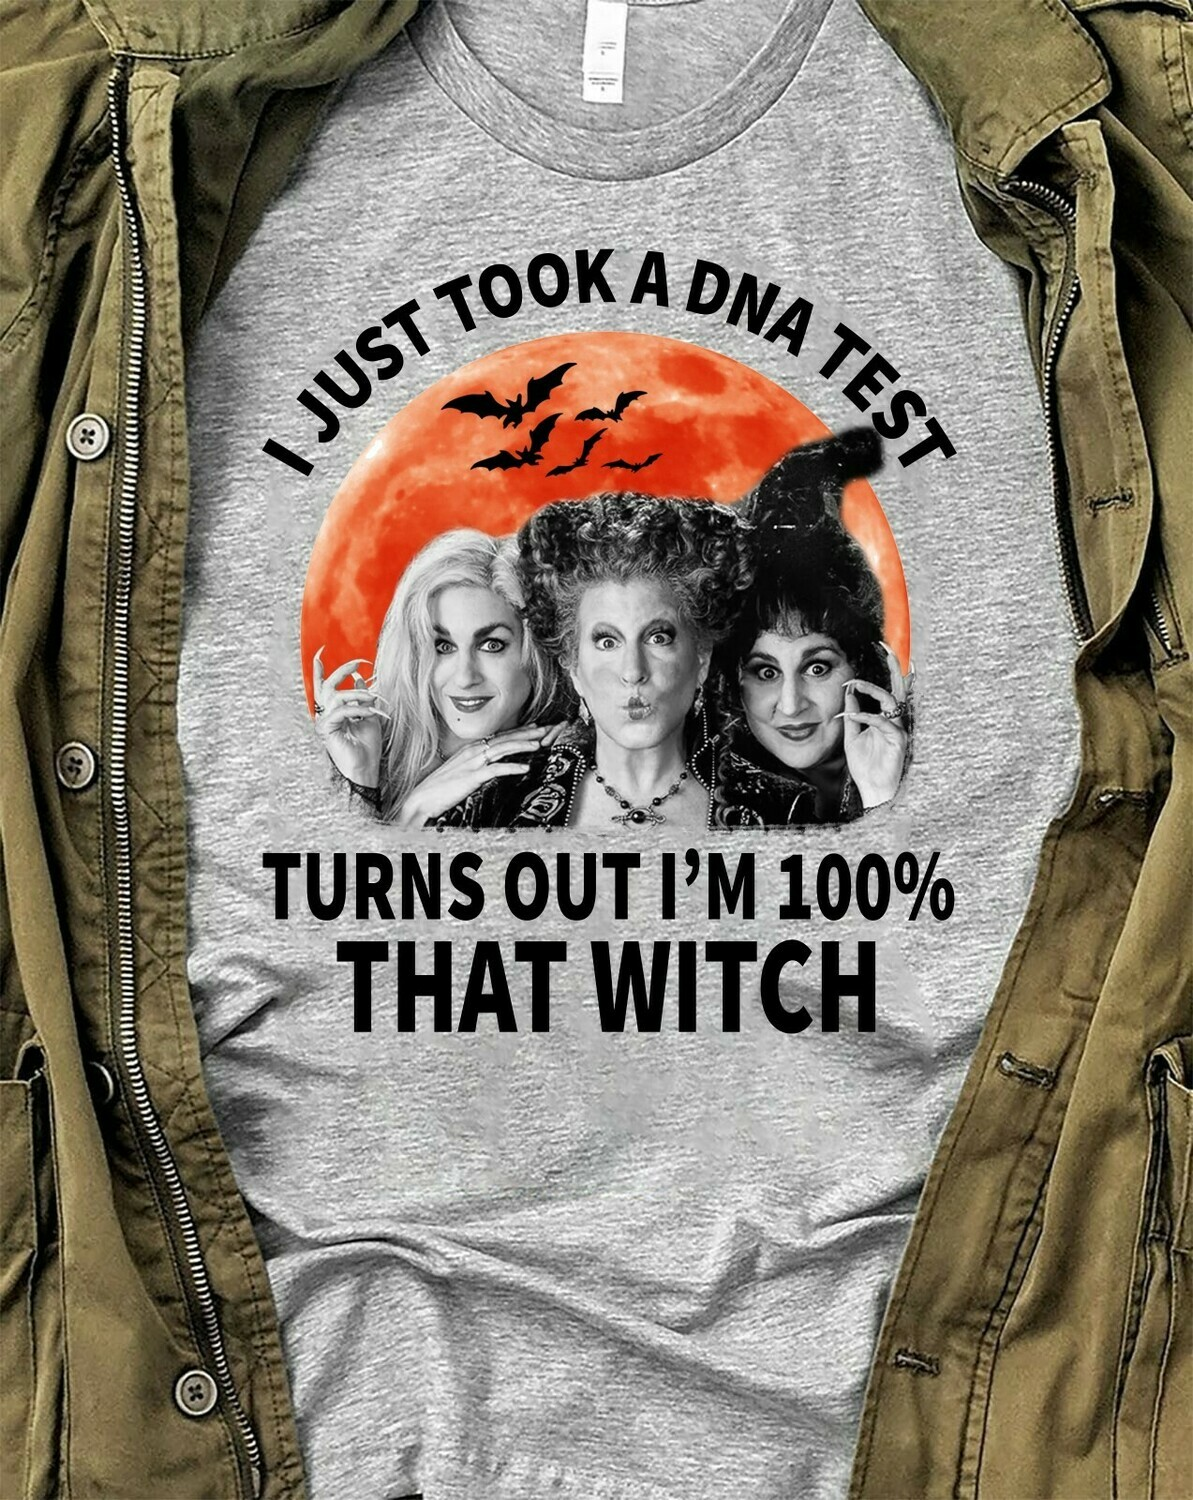 Sanderson Sisters I Just Took A DNA Test Turns Out I'm 100% That Witch Bad Girls Have More Fun Walt Disney World Disneyland Park T-Shirt Long Sleeve Sweatshirt Hoodie Jolly Family Gifts